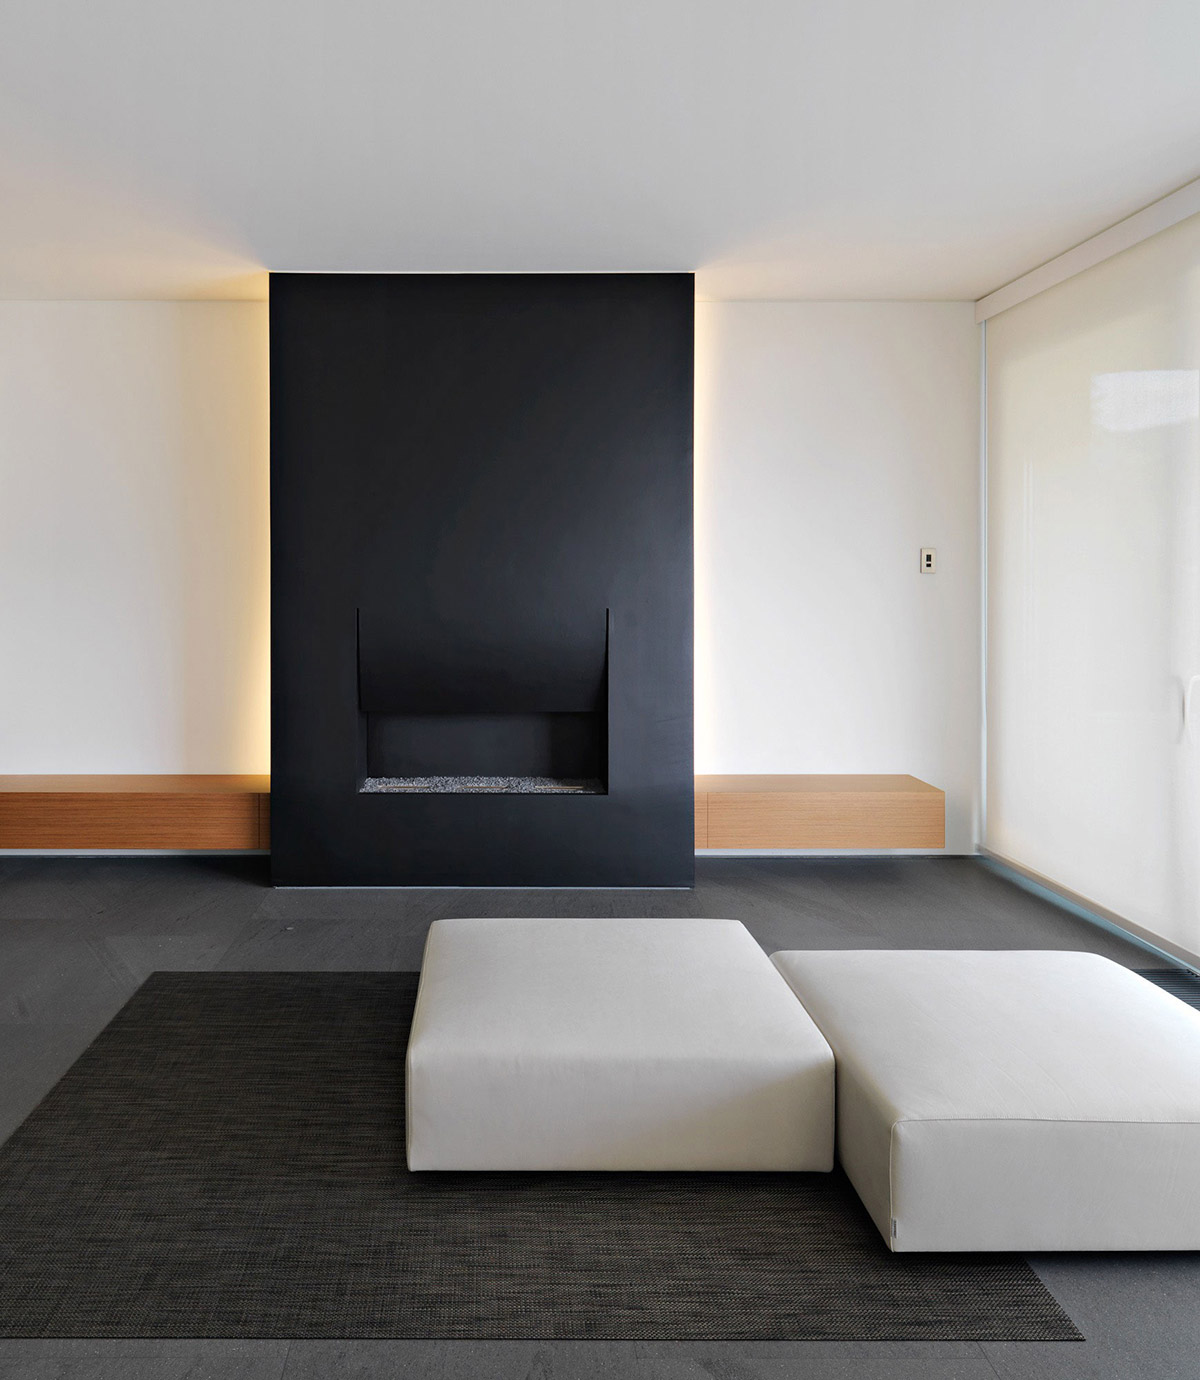 Minimalist home in lugano switzerland by victor vasilev for Minimalist home interior